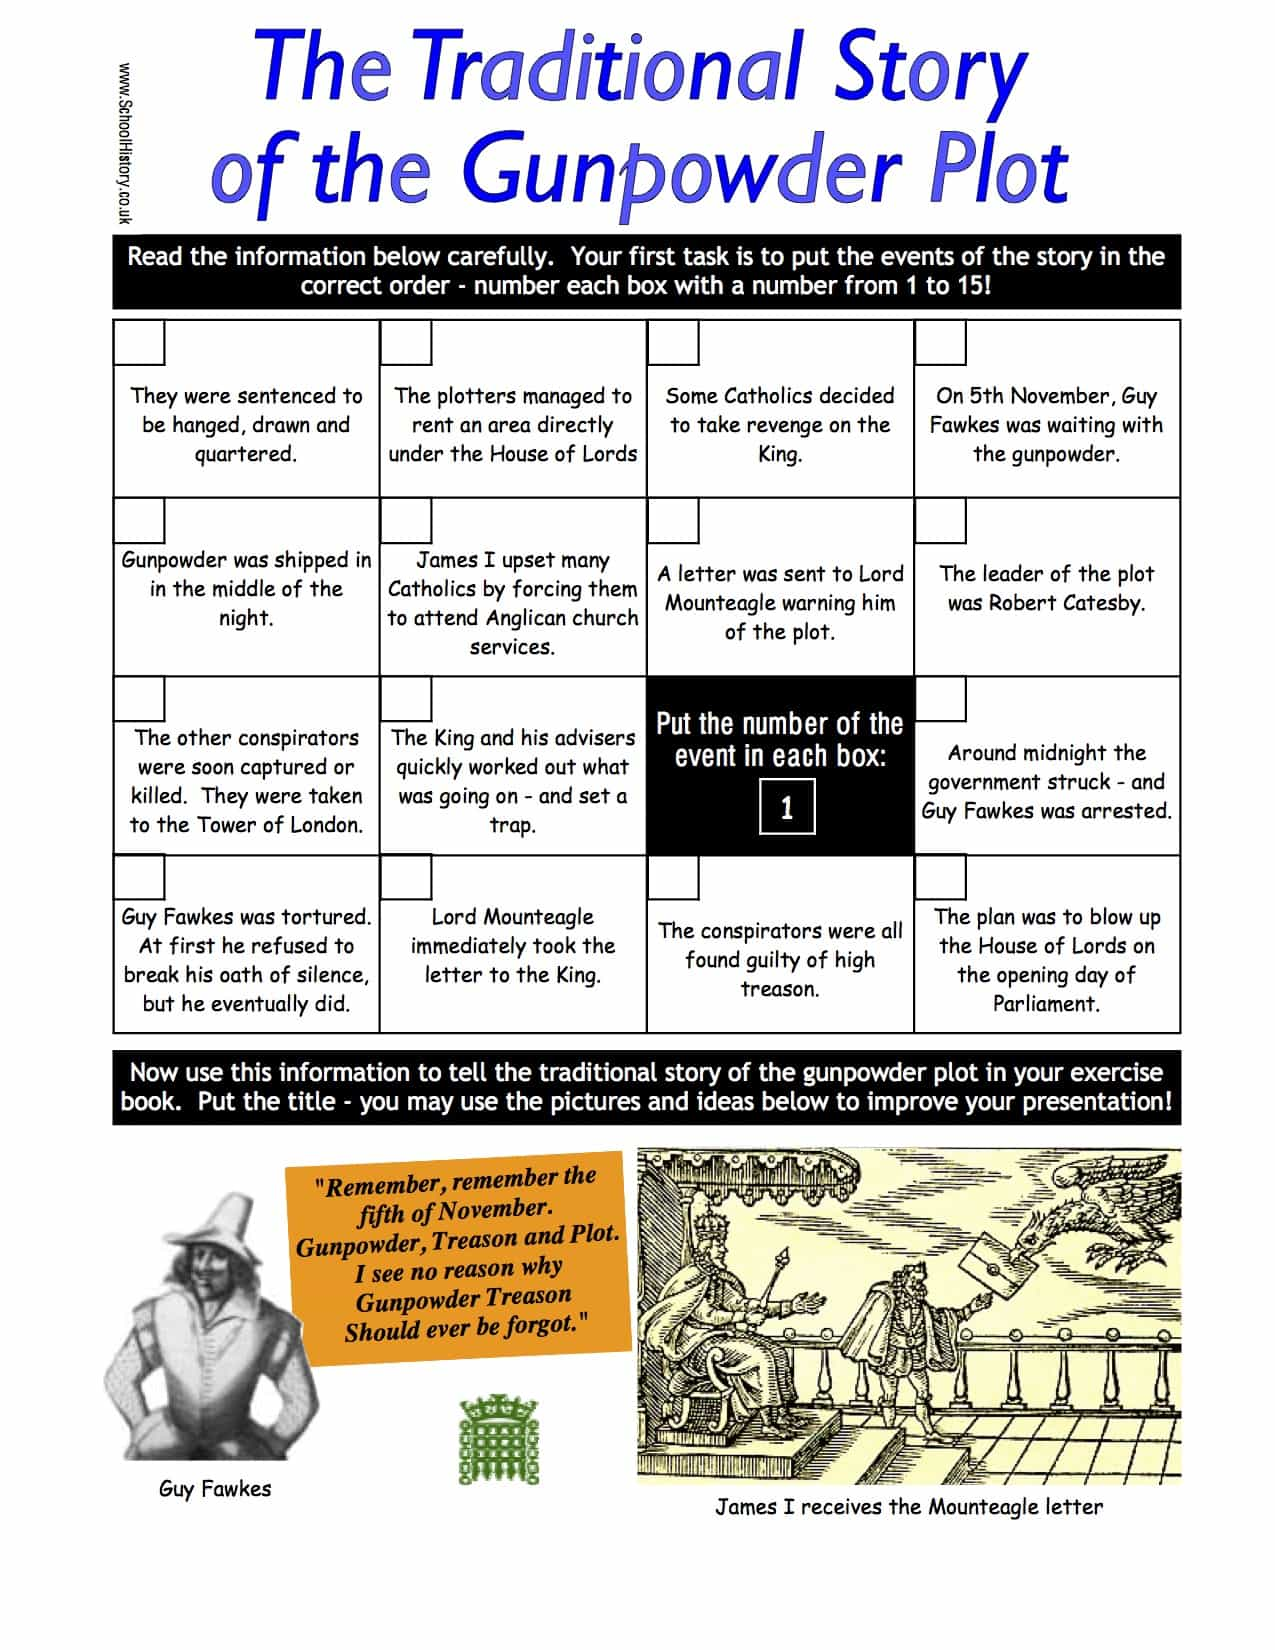 The Traditional Story Of The Gunpowder Plot Worksheet